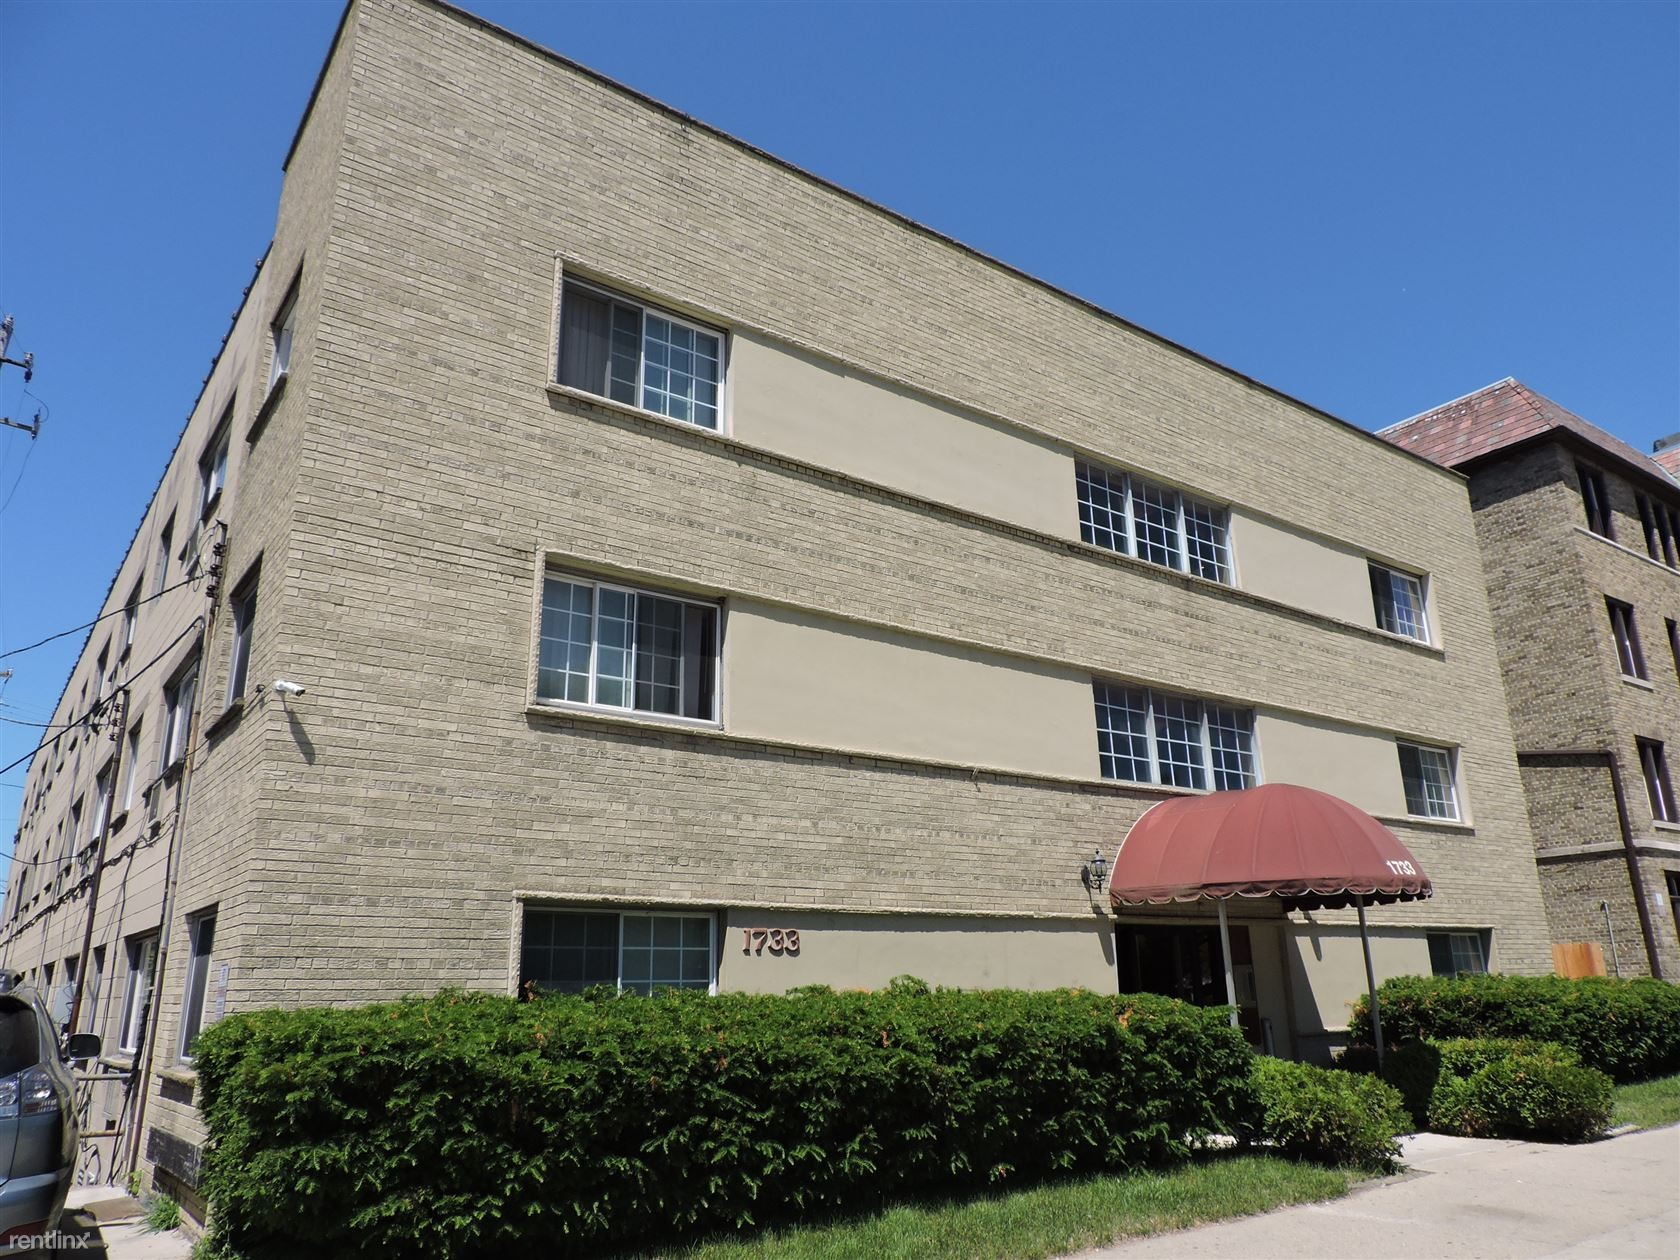 1639 N Farwell Ave Milwaukee Wi 53202 1 Bedroom Apartment For Rent Padmapper